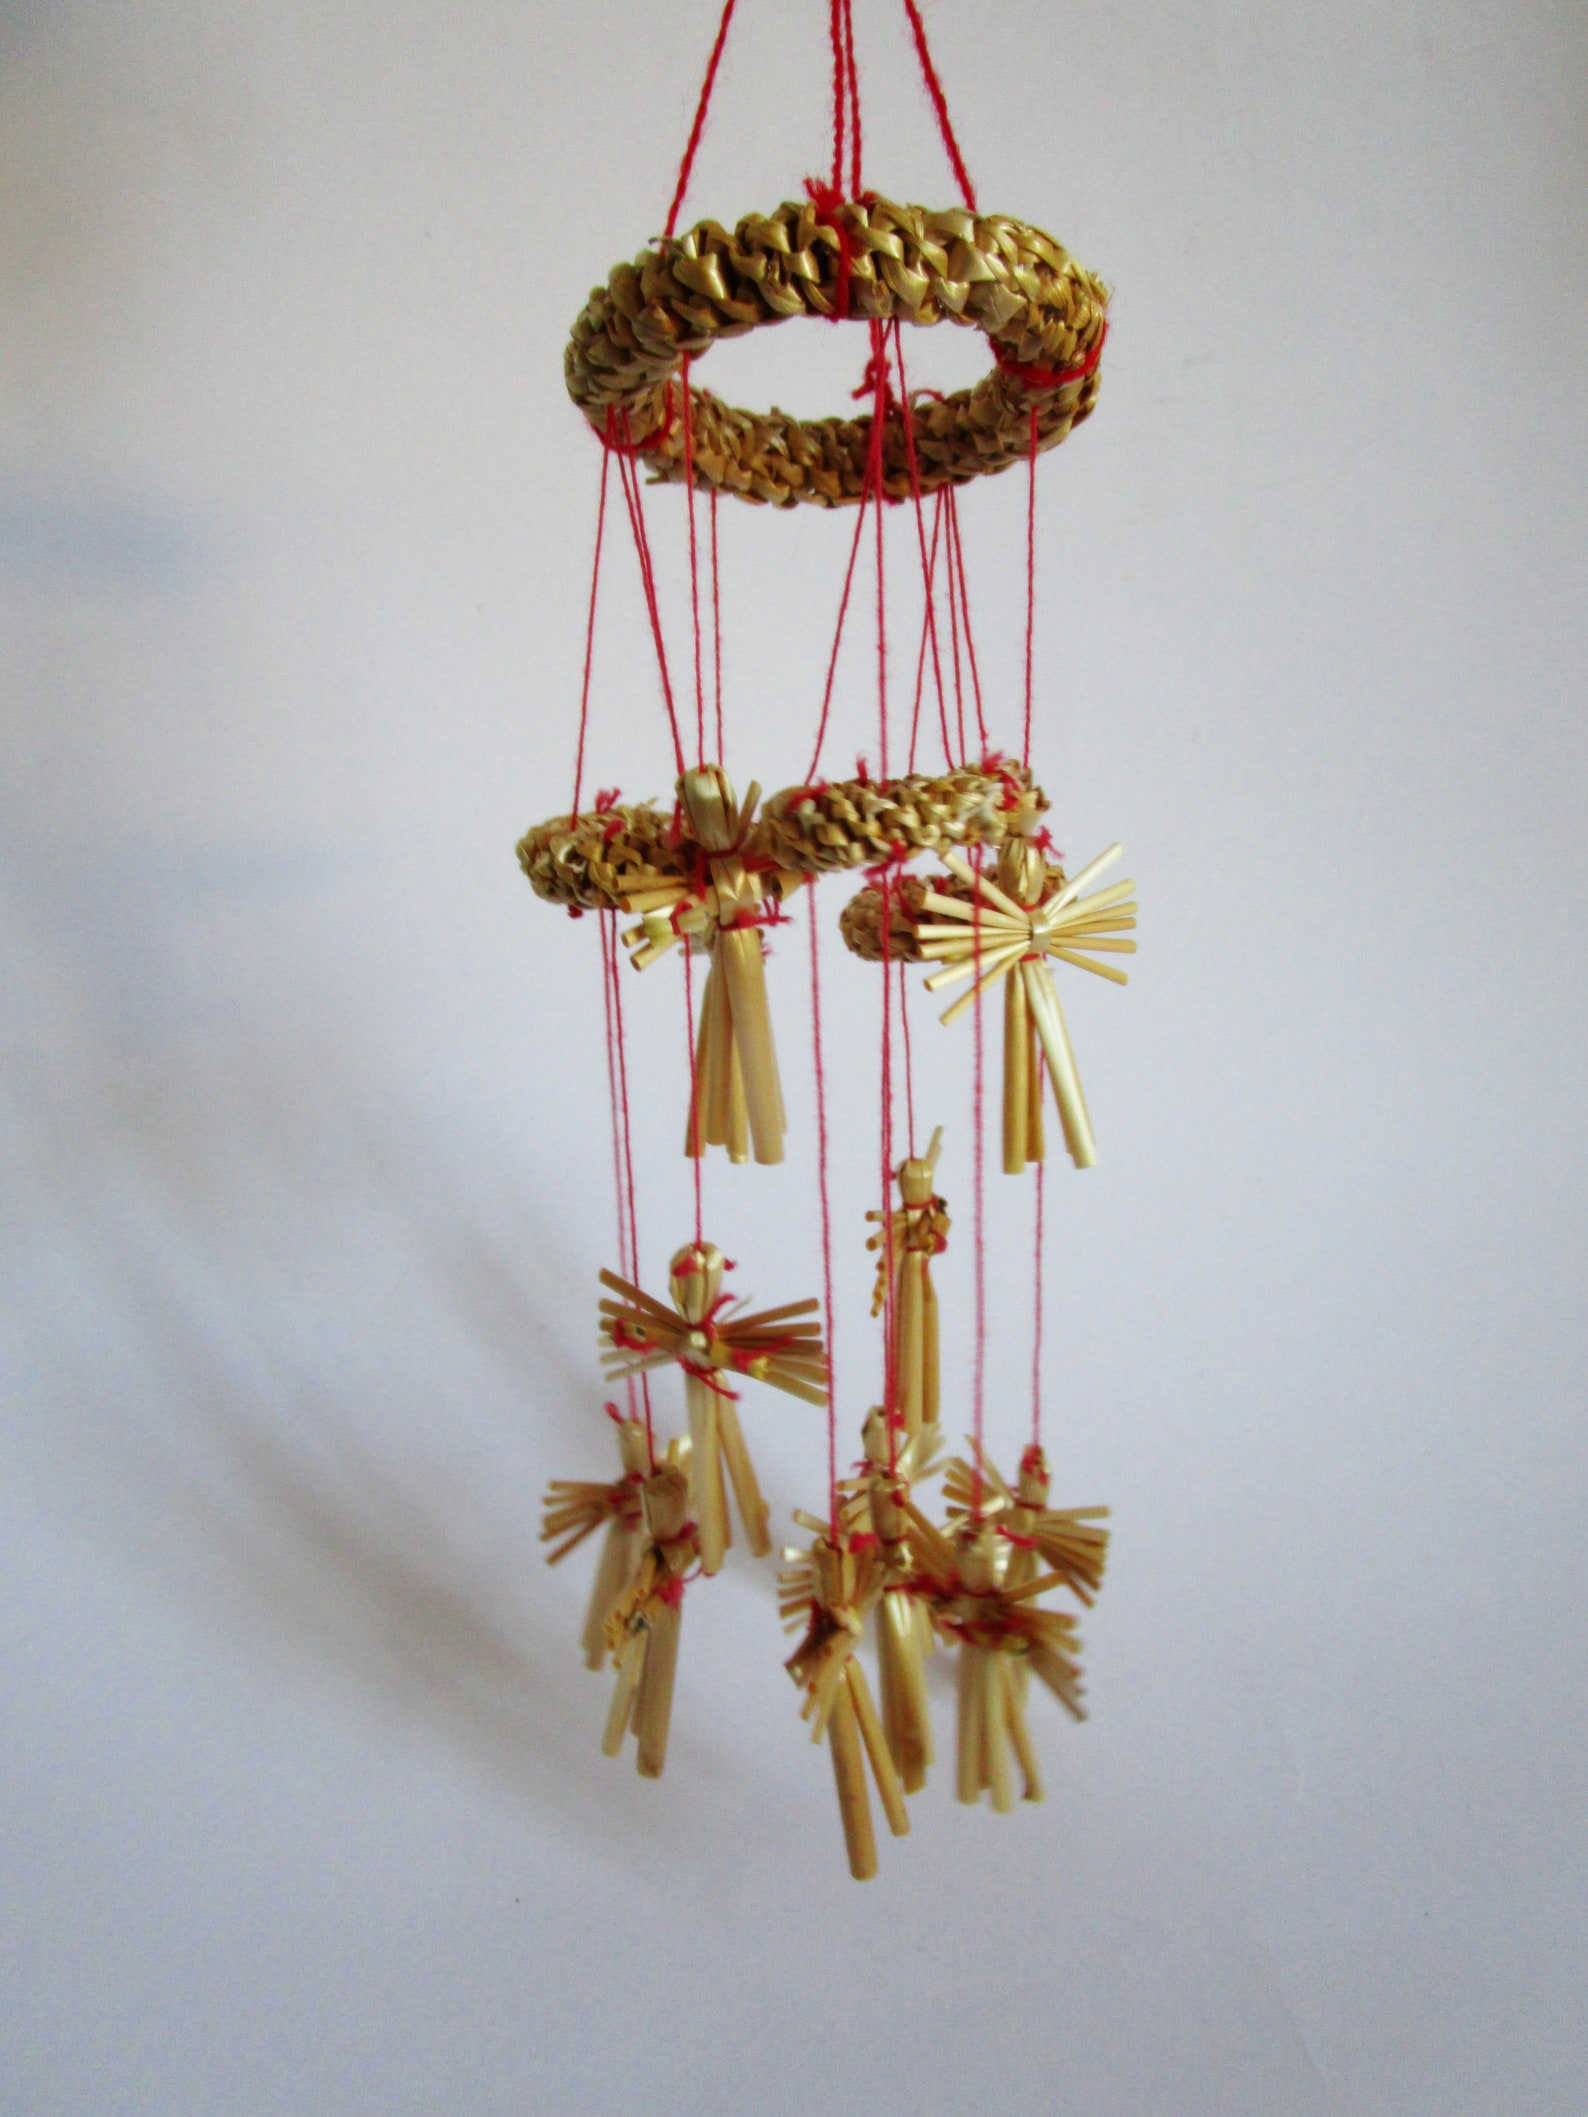 Retro straw garland with wreath and angels for Christmas and home decor for hanging